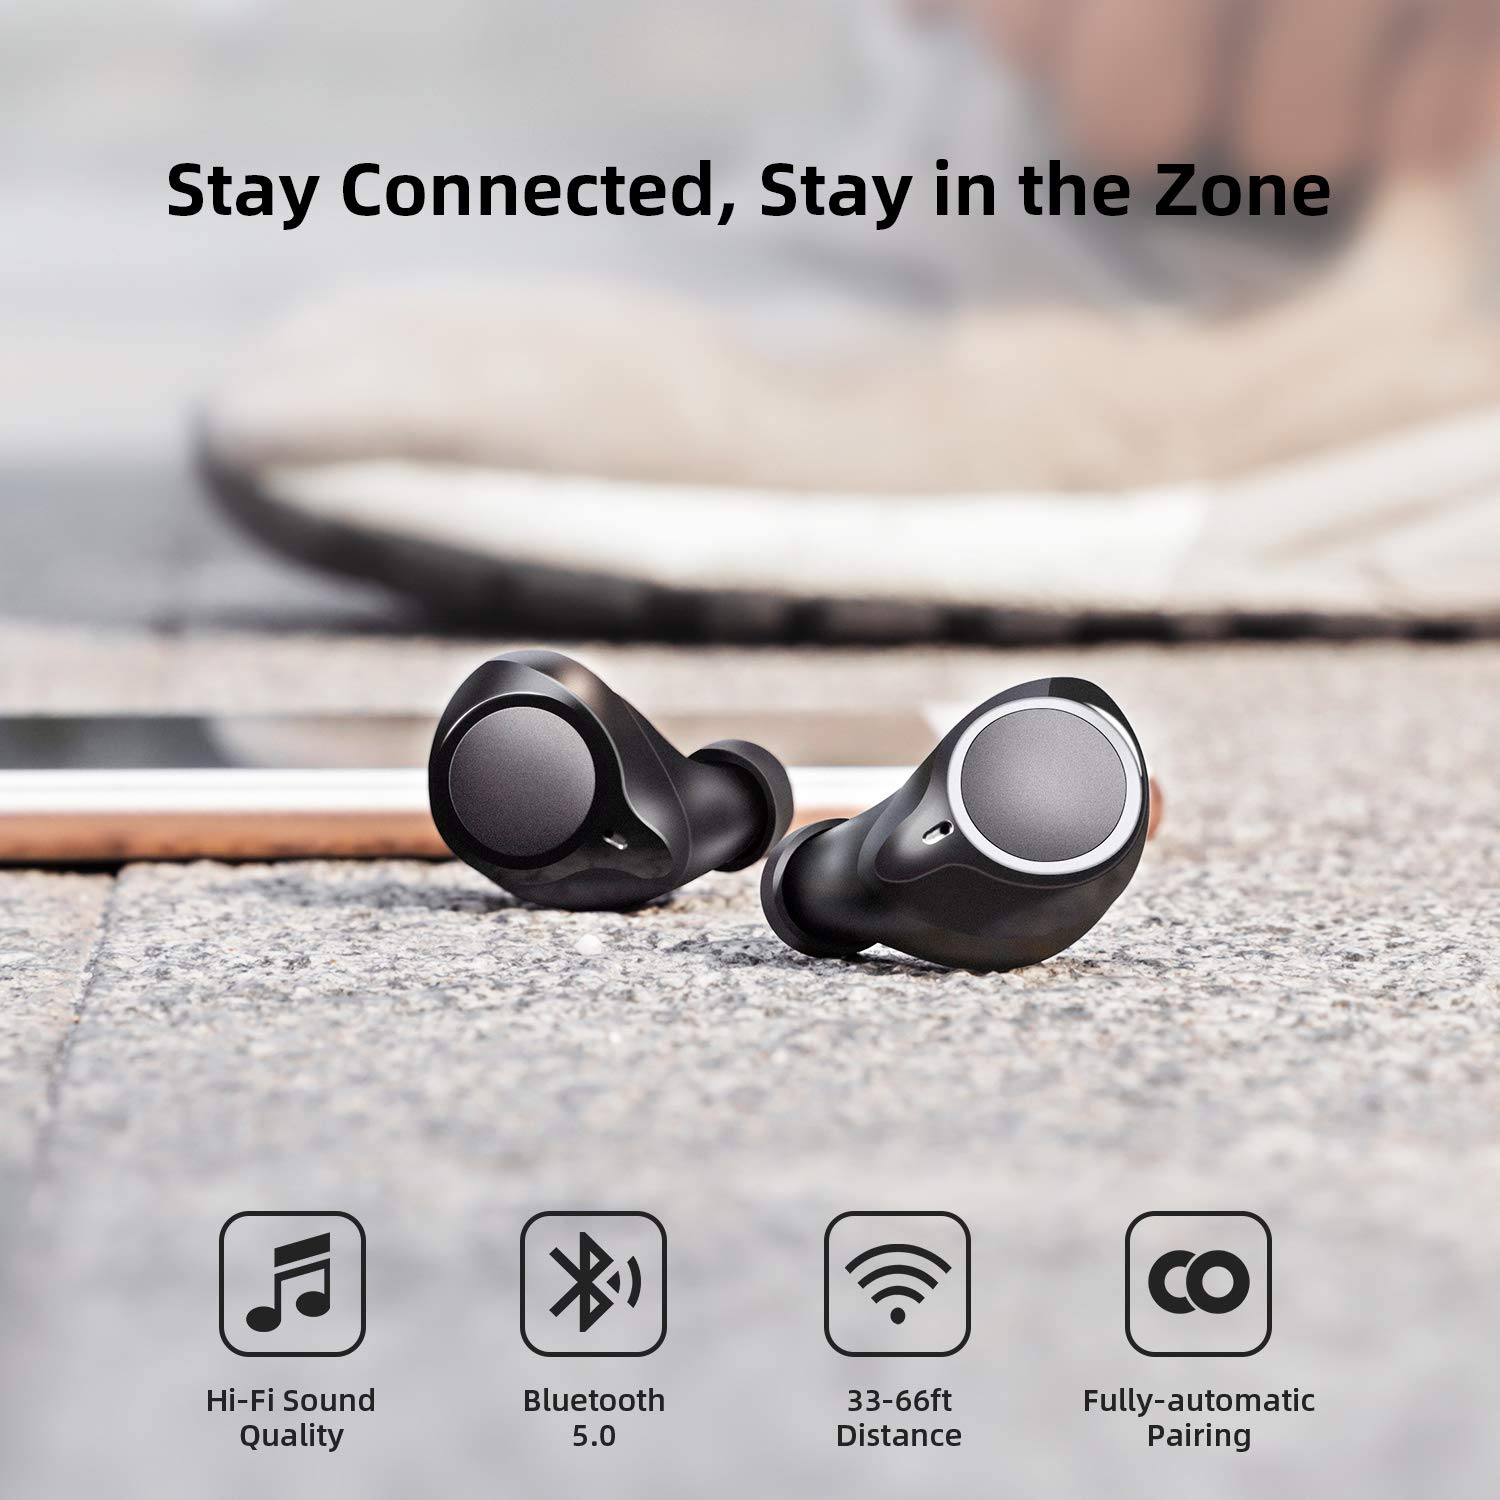 Bluetooth 5.0 Wireless Headphones, ENACFIRE Future Plus Wireless Bluetooth Earbuds with 104 Cycle Playing Time IPX5 Waterproof for Sport One-Key Control Hi-Fi Sound Quality Stable Connection by ENACFIRE (Image #4)